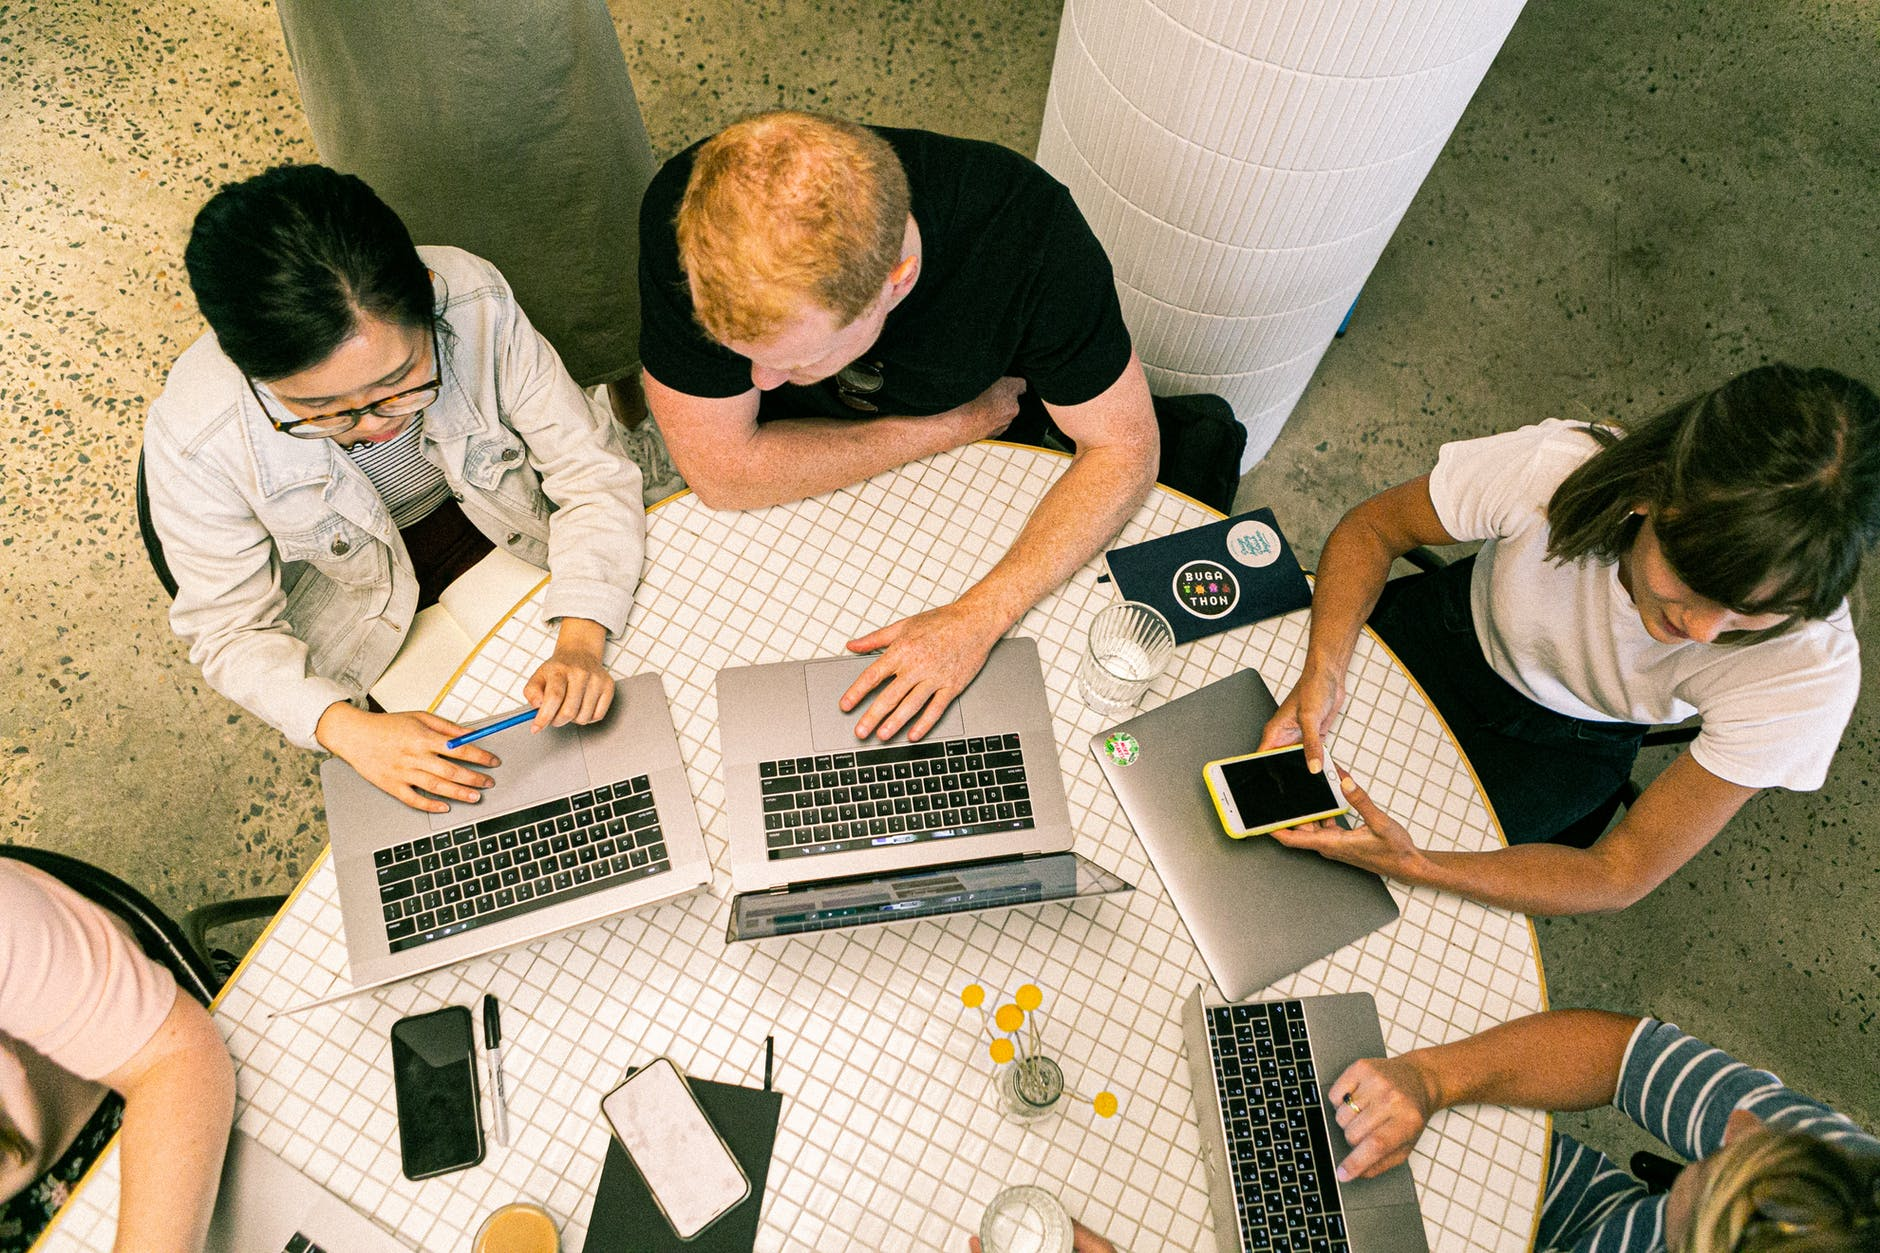 group working on a laptop